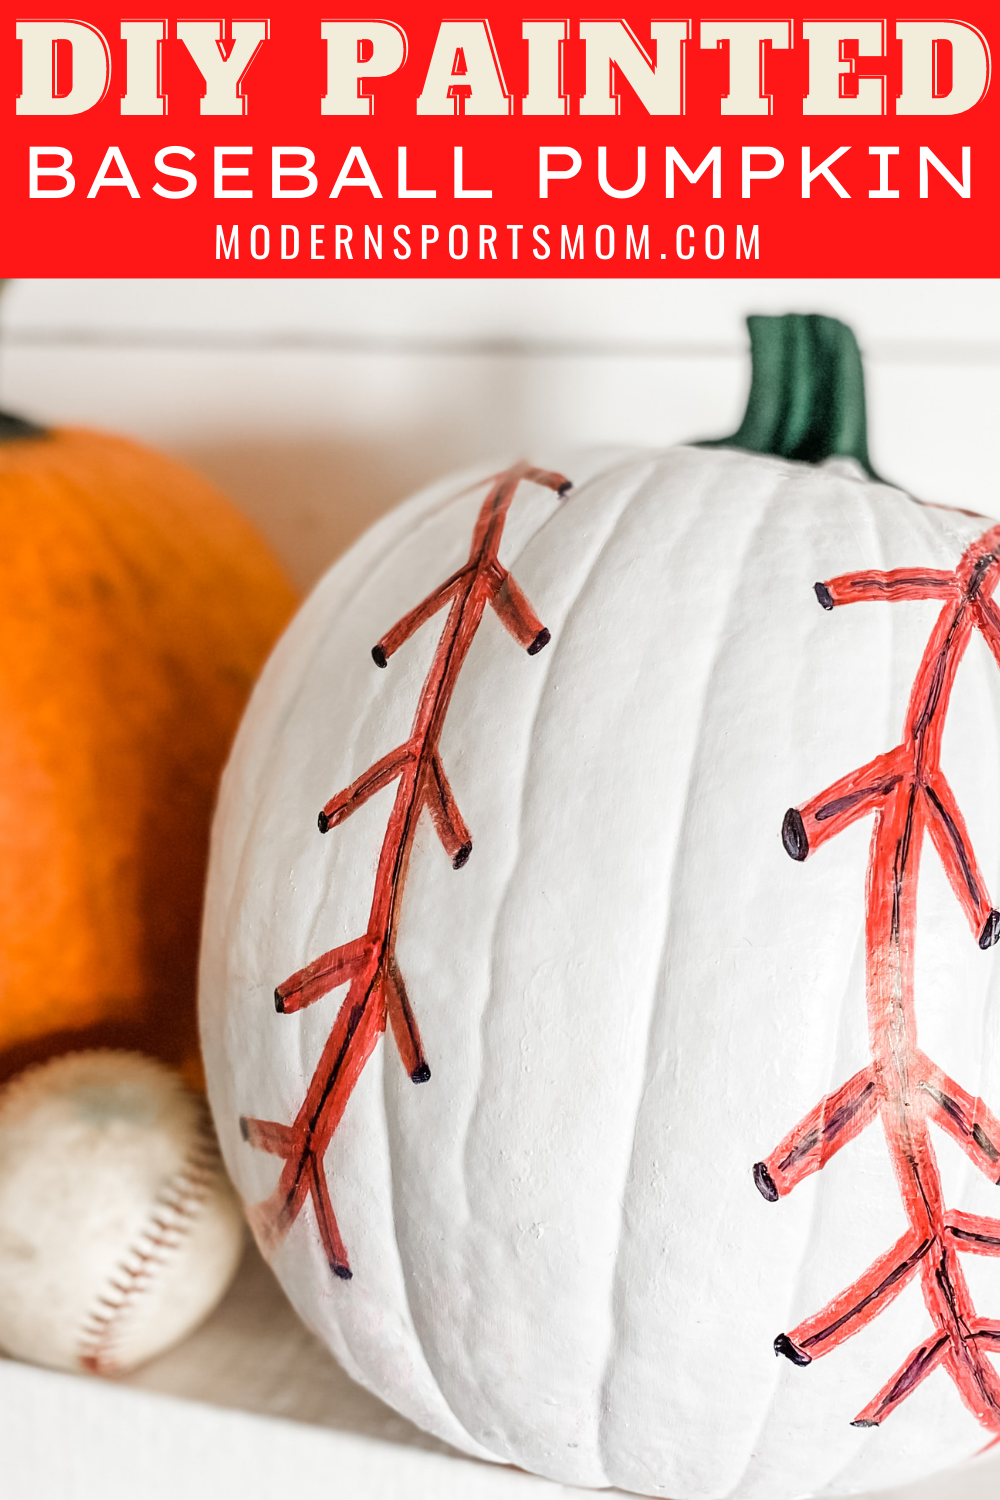 An easy alternative to carving, painting a pumpkin can be so fun and the possibilities are endless! This easy DIY Painted Baseball Pumpkin came together quickly and it's the perfect addition to our Halloween decor, especially as sports fans!